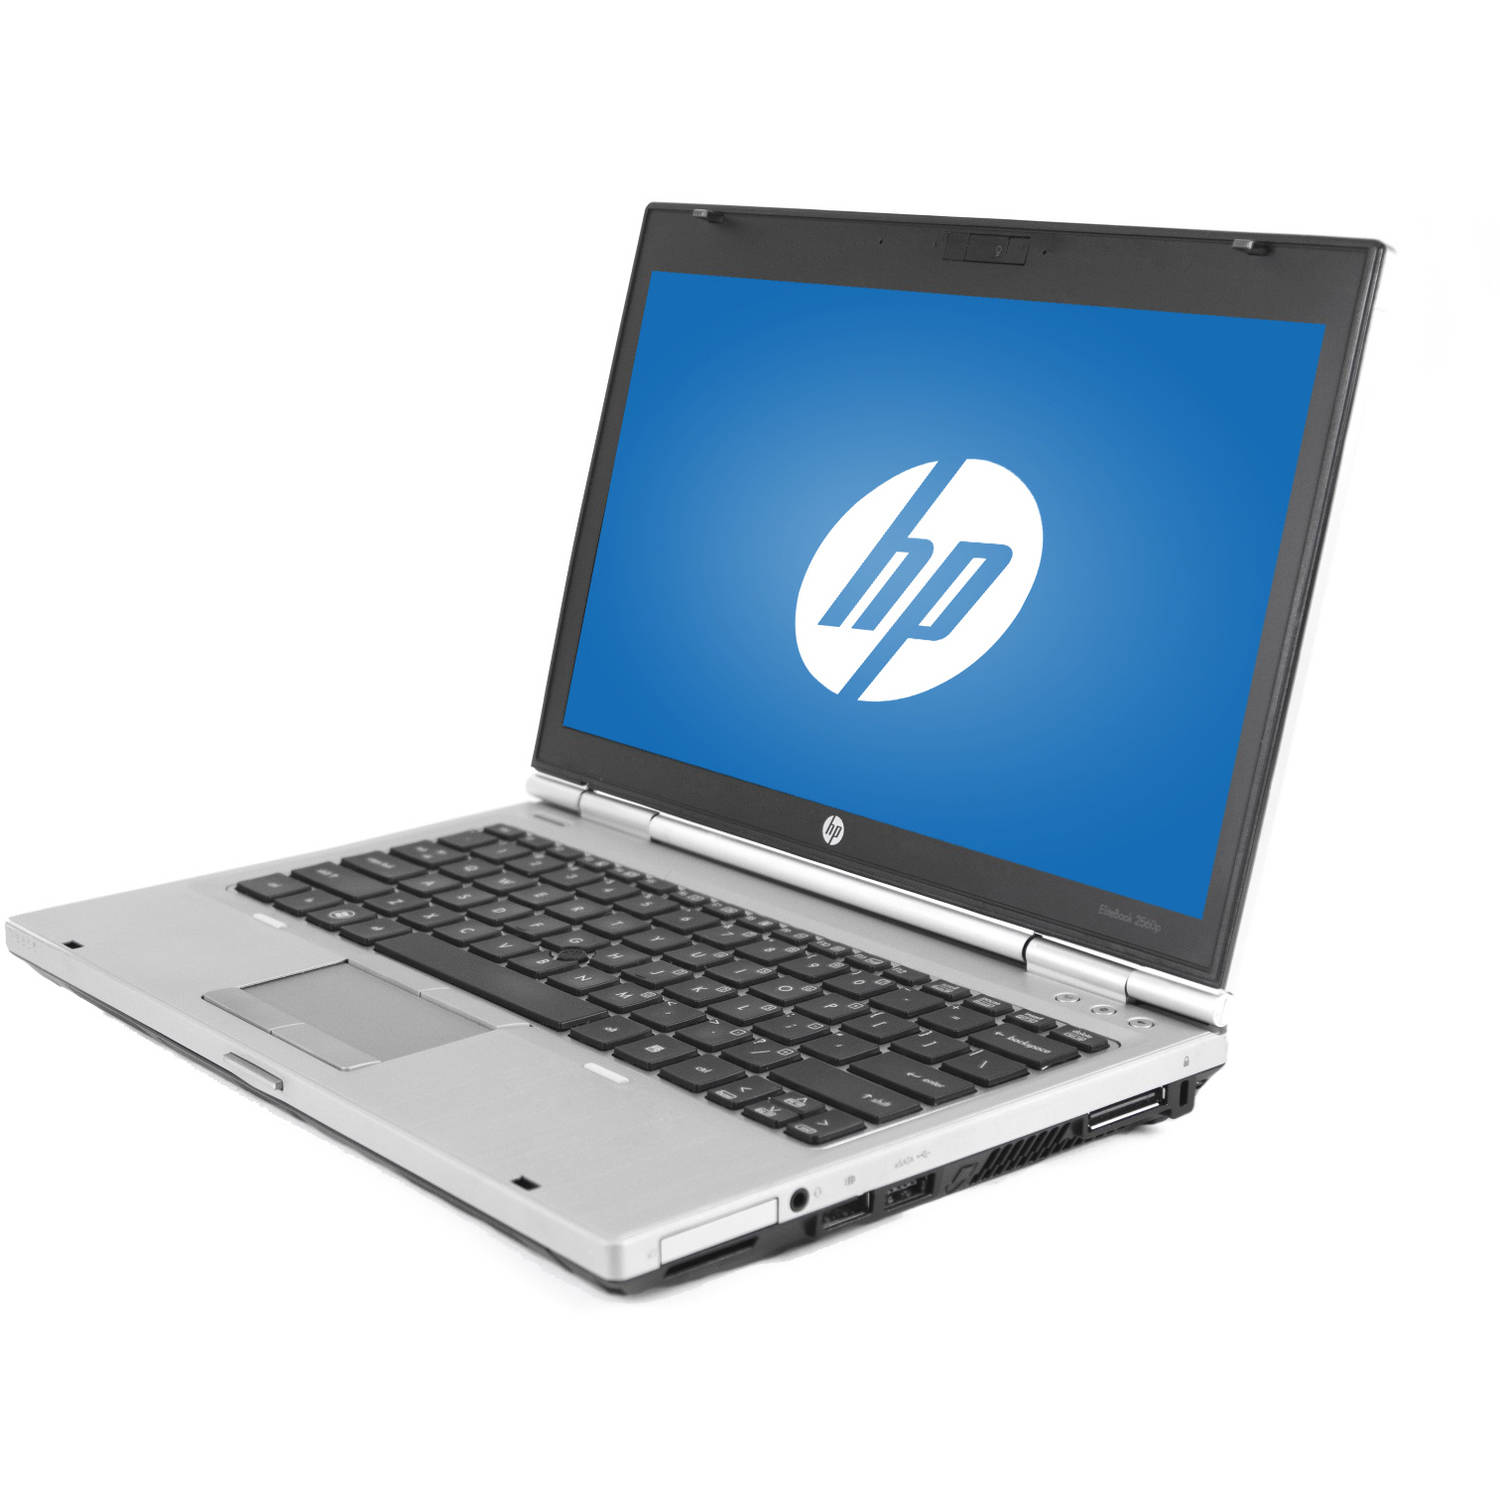 "Refurbished HP Silver 12.5"" EliteBook 2560P WA5-0995 Laptop PC with Intel Core i5-2410M Processor, 4GB Memory, 320GB Hard Drive and Windows 10 Home"